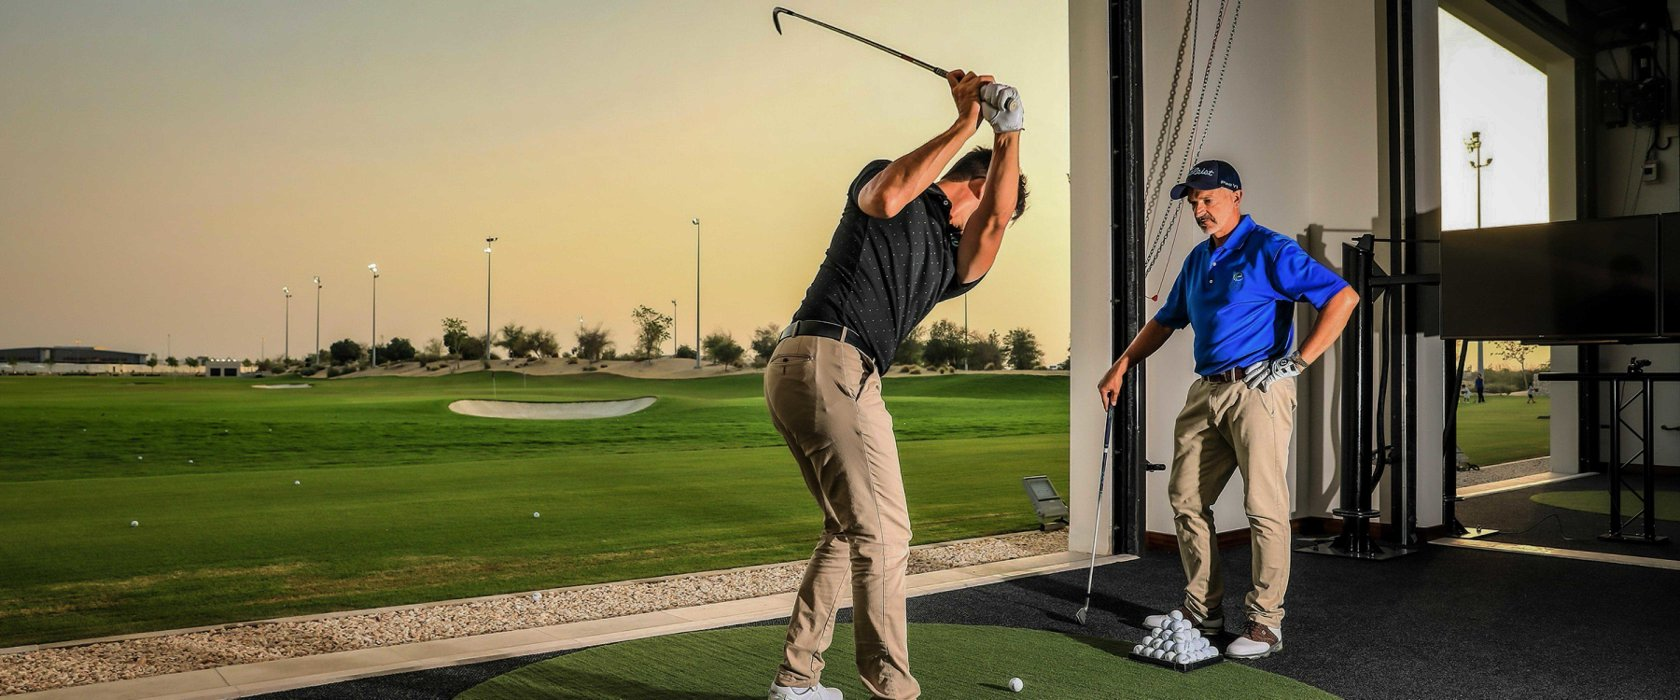 Qatar Foundation helps to grow the game of golf in Qatar